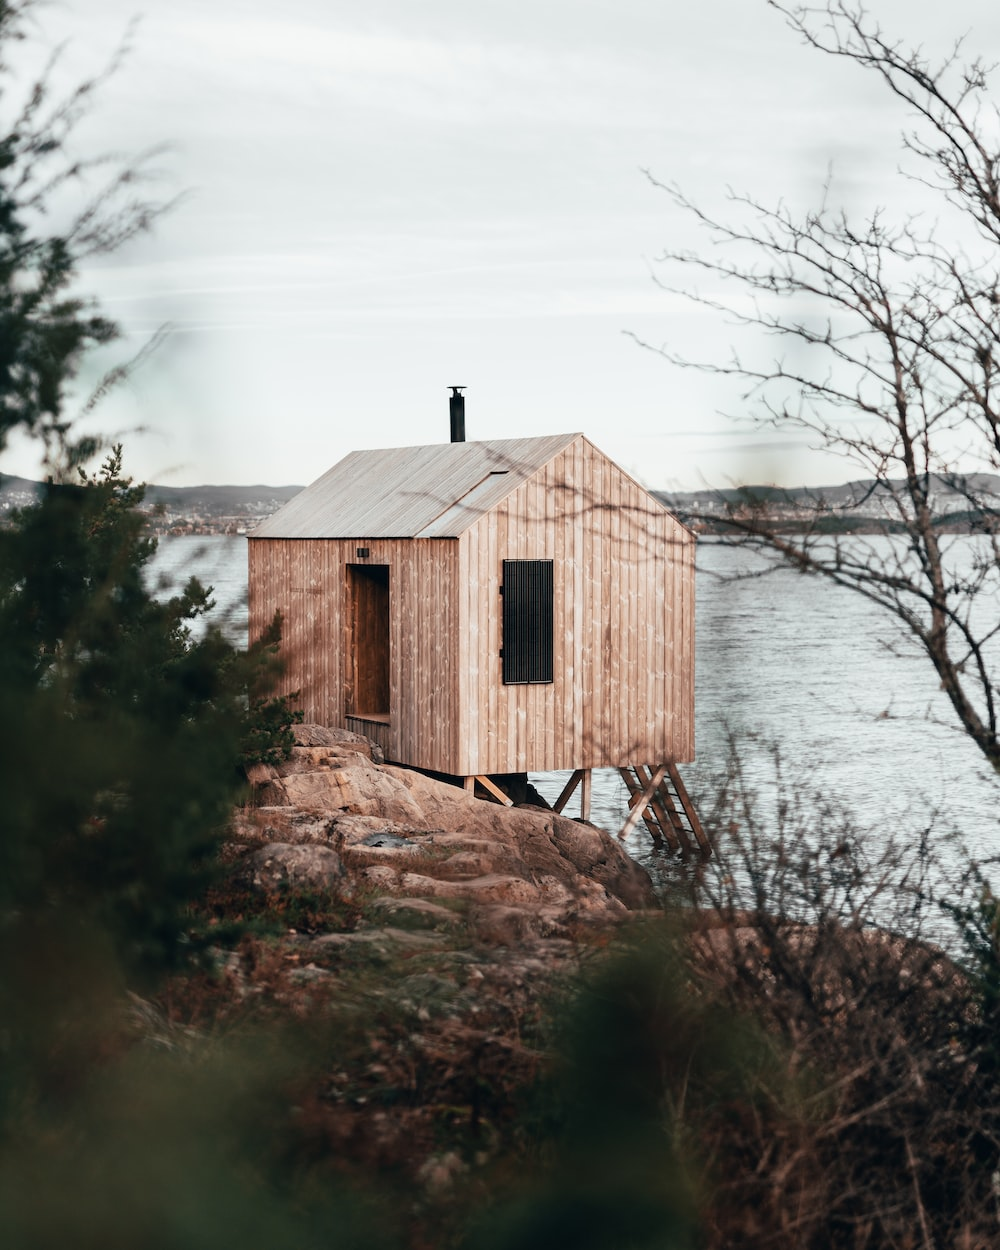 brown wooden house near body of water